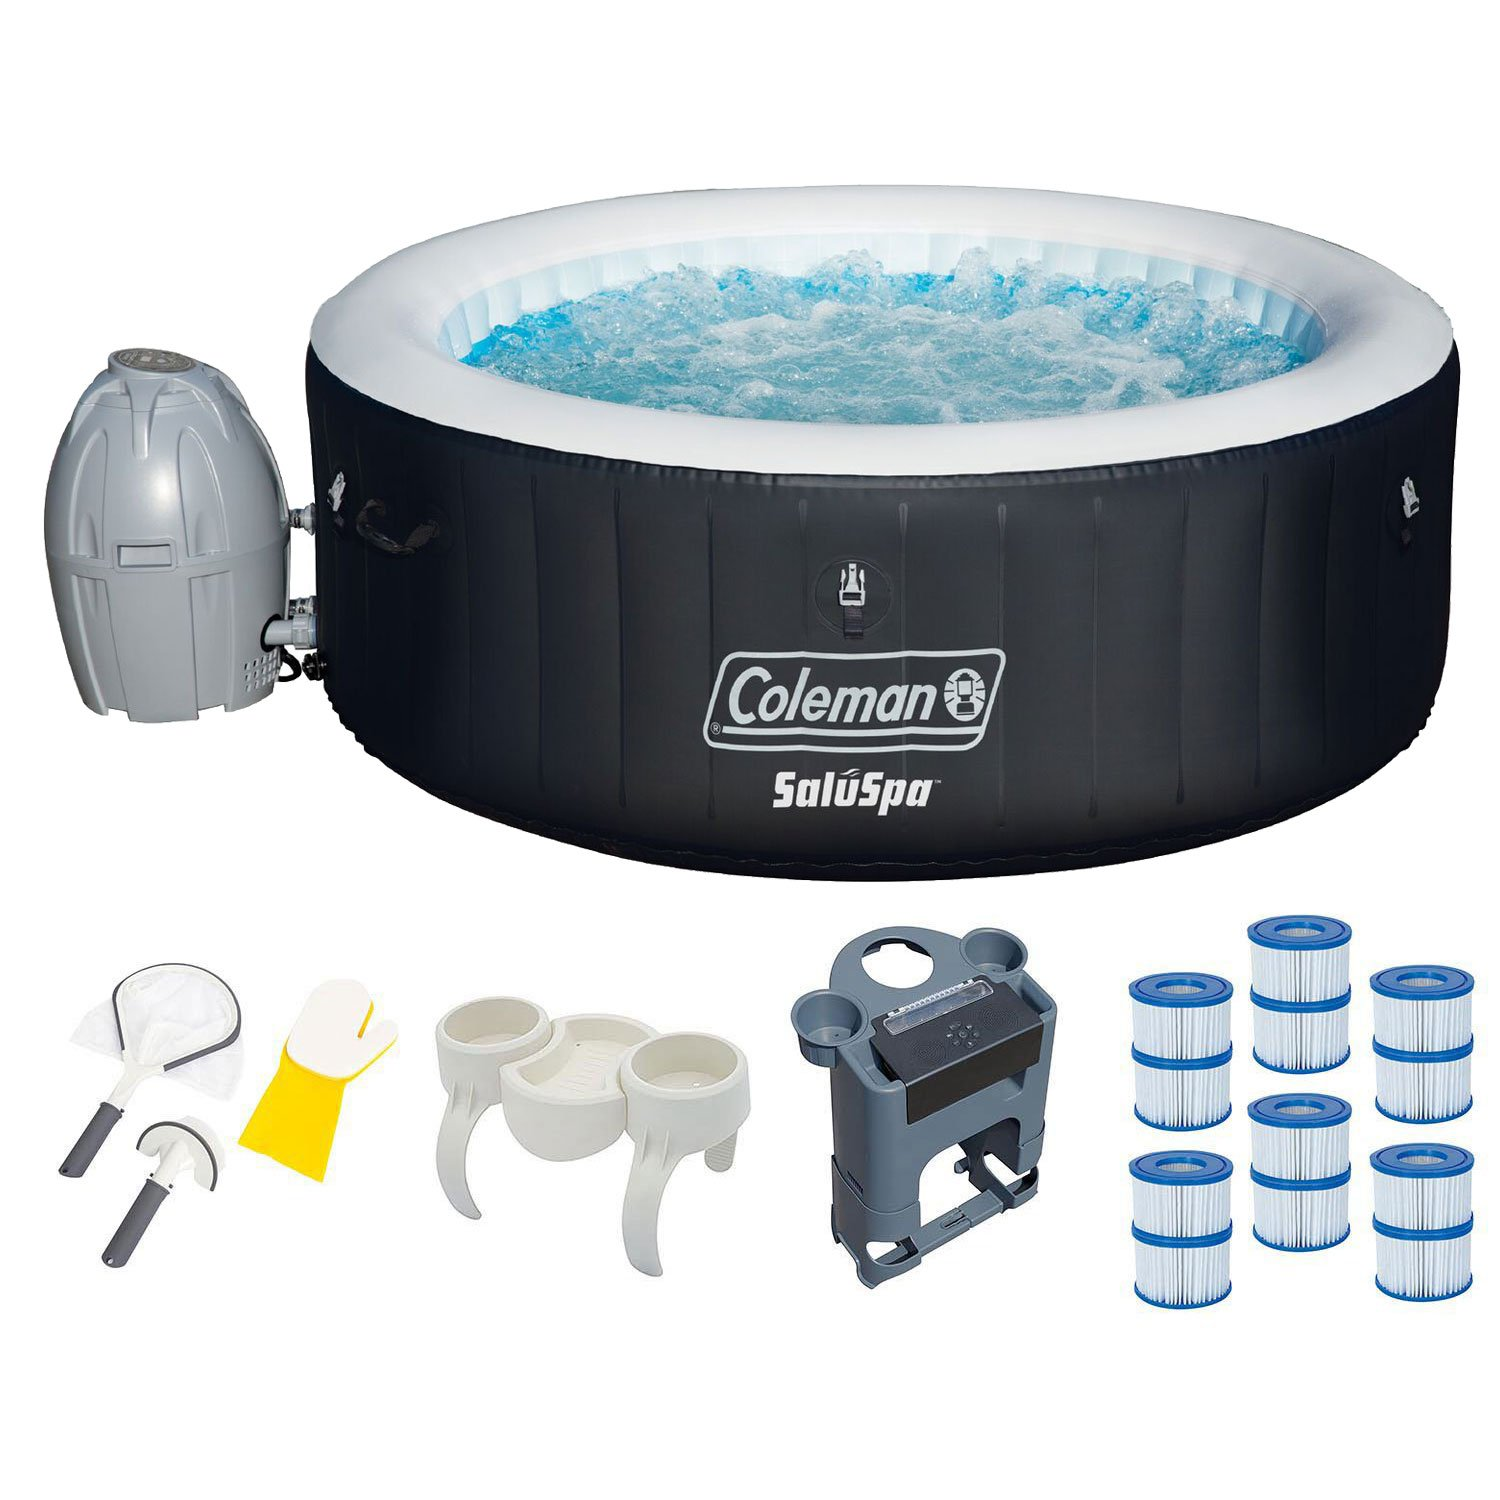 Coleman SaluSpa 4-Person Inflatable Spa Hot Tub with Accessories & Cleaning Kit by Coleman